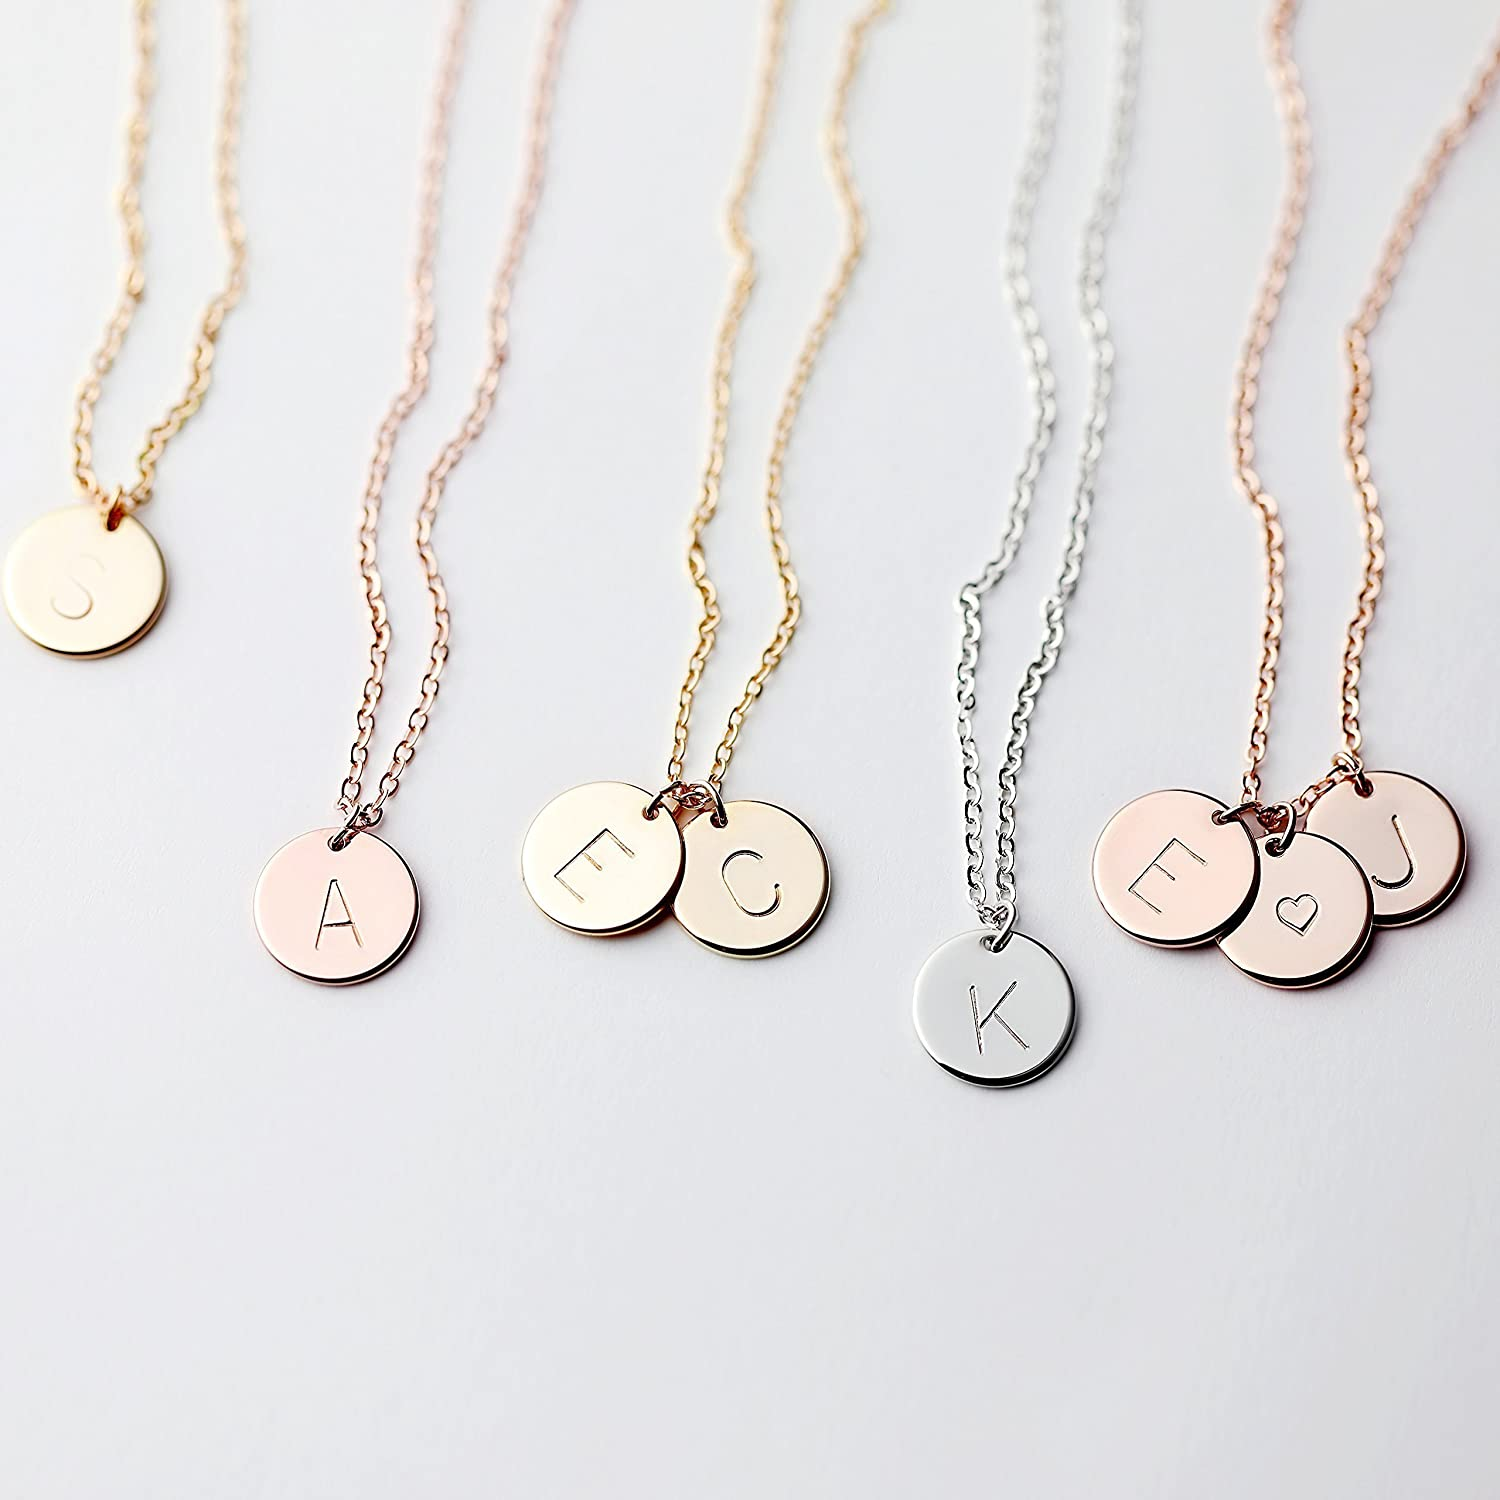 B015LOH854 Delicate Initial Disc Necklace Rose Gold Initial Necklace Best Friend Personalized Bridesmaid Gift Geometric Jewelry Women Holiday Letter Jewelry - CN 81CFFqGtTYL